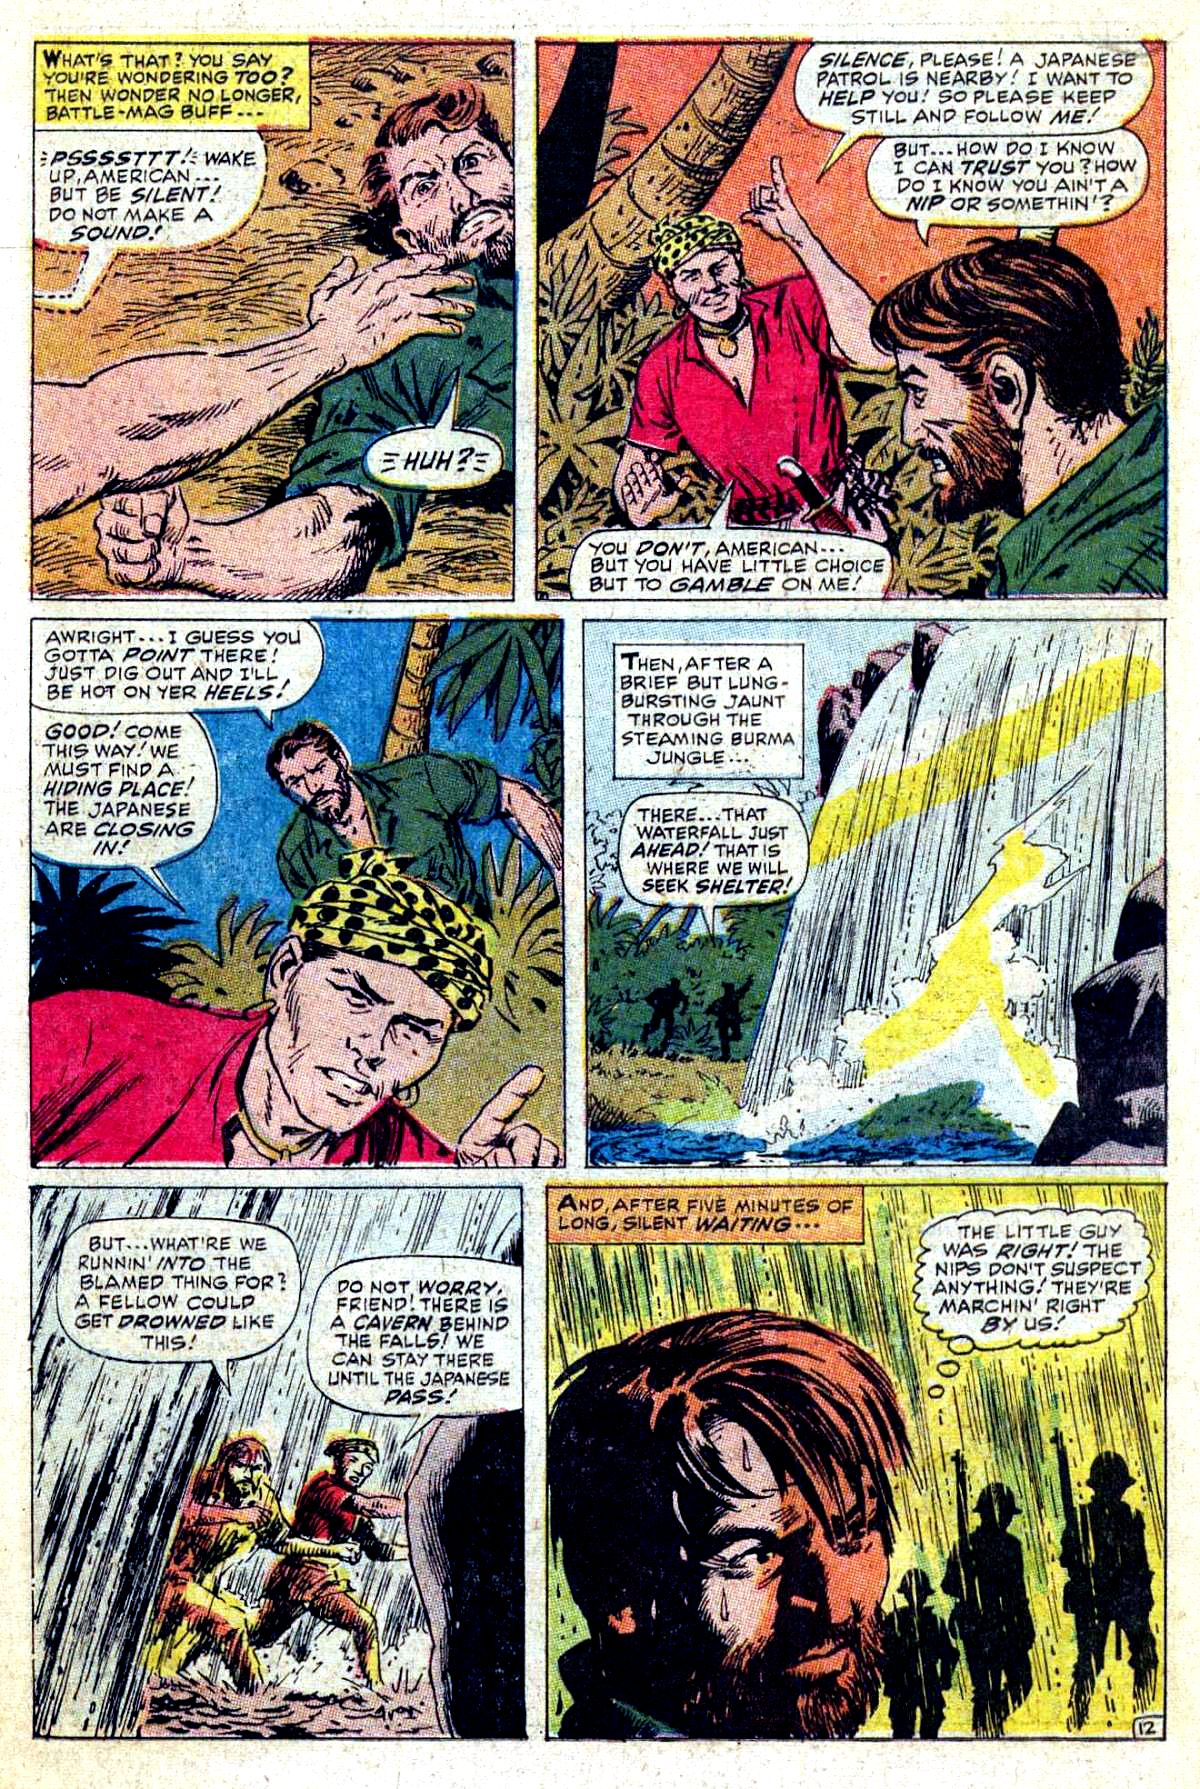 Read online Sgt. Fury comic -  Issue #54 - 18